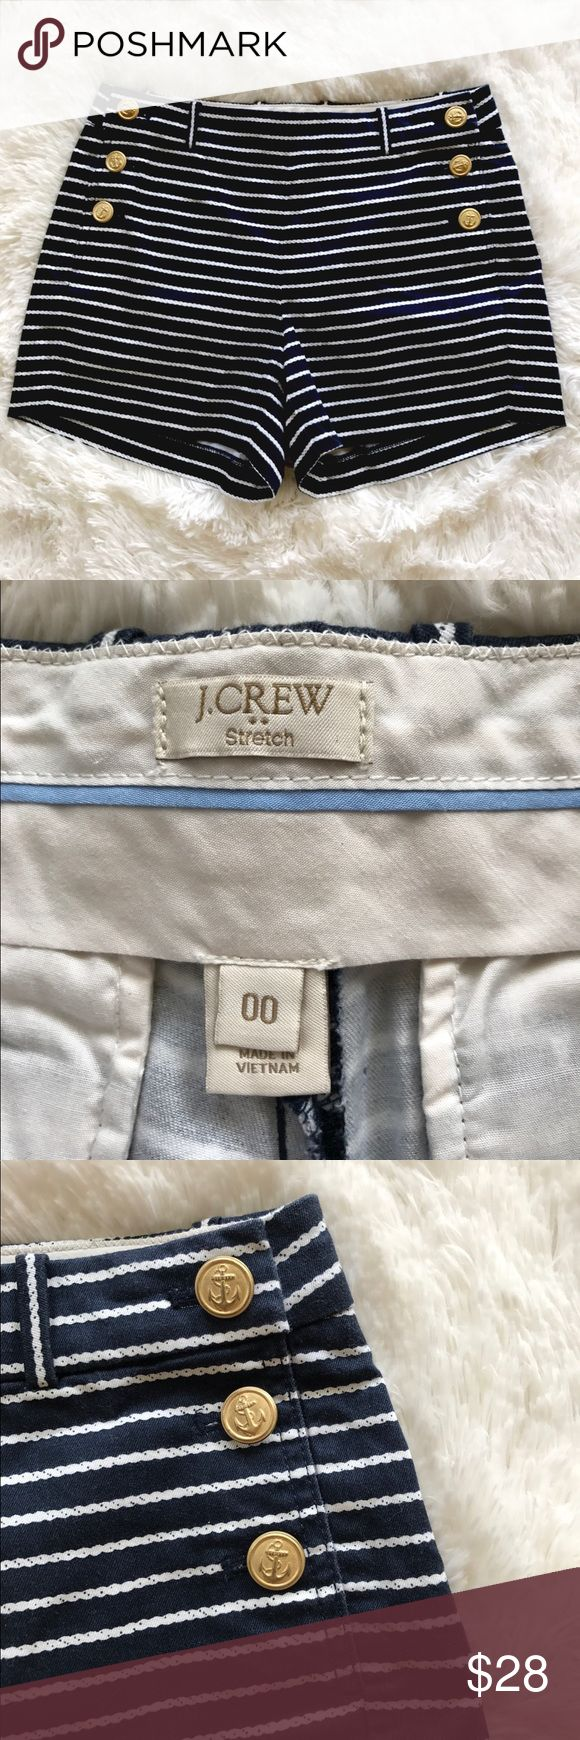 """J. Crew Factory Nautical Shorts J. Crew Factory Nautical Shorts - Size 00. Navy and white. Gold anchor buttons. No stains or tears. Waist: 28"""" // Inseam: 3"""" // Open to offers J. Crew Factory Shorts"""